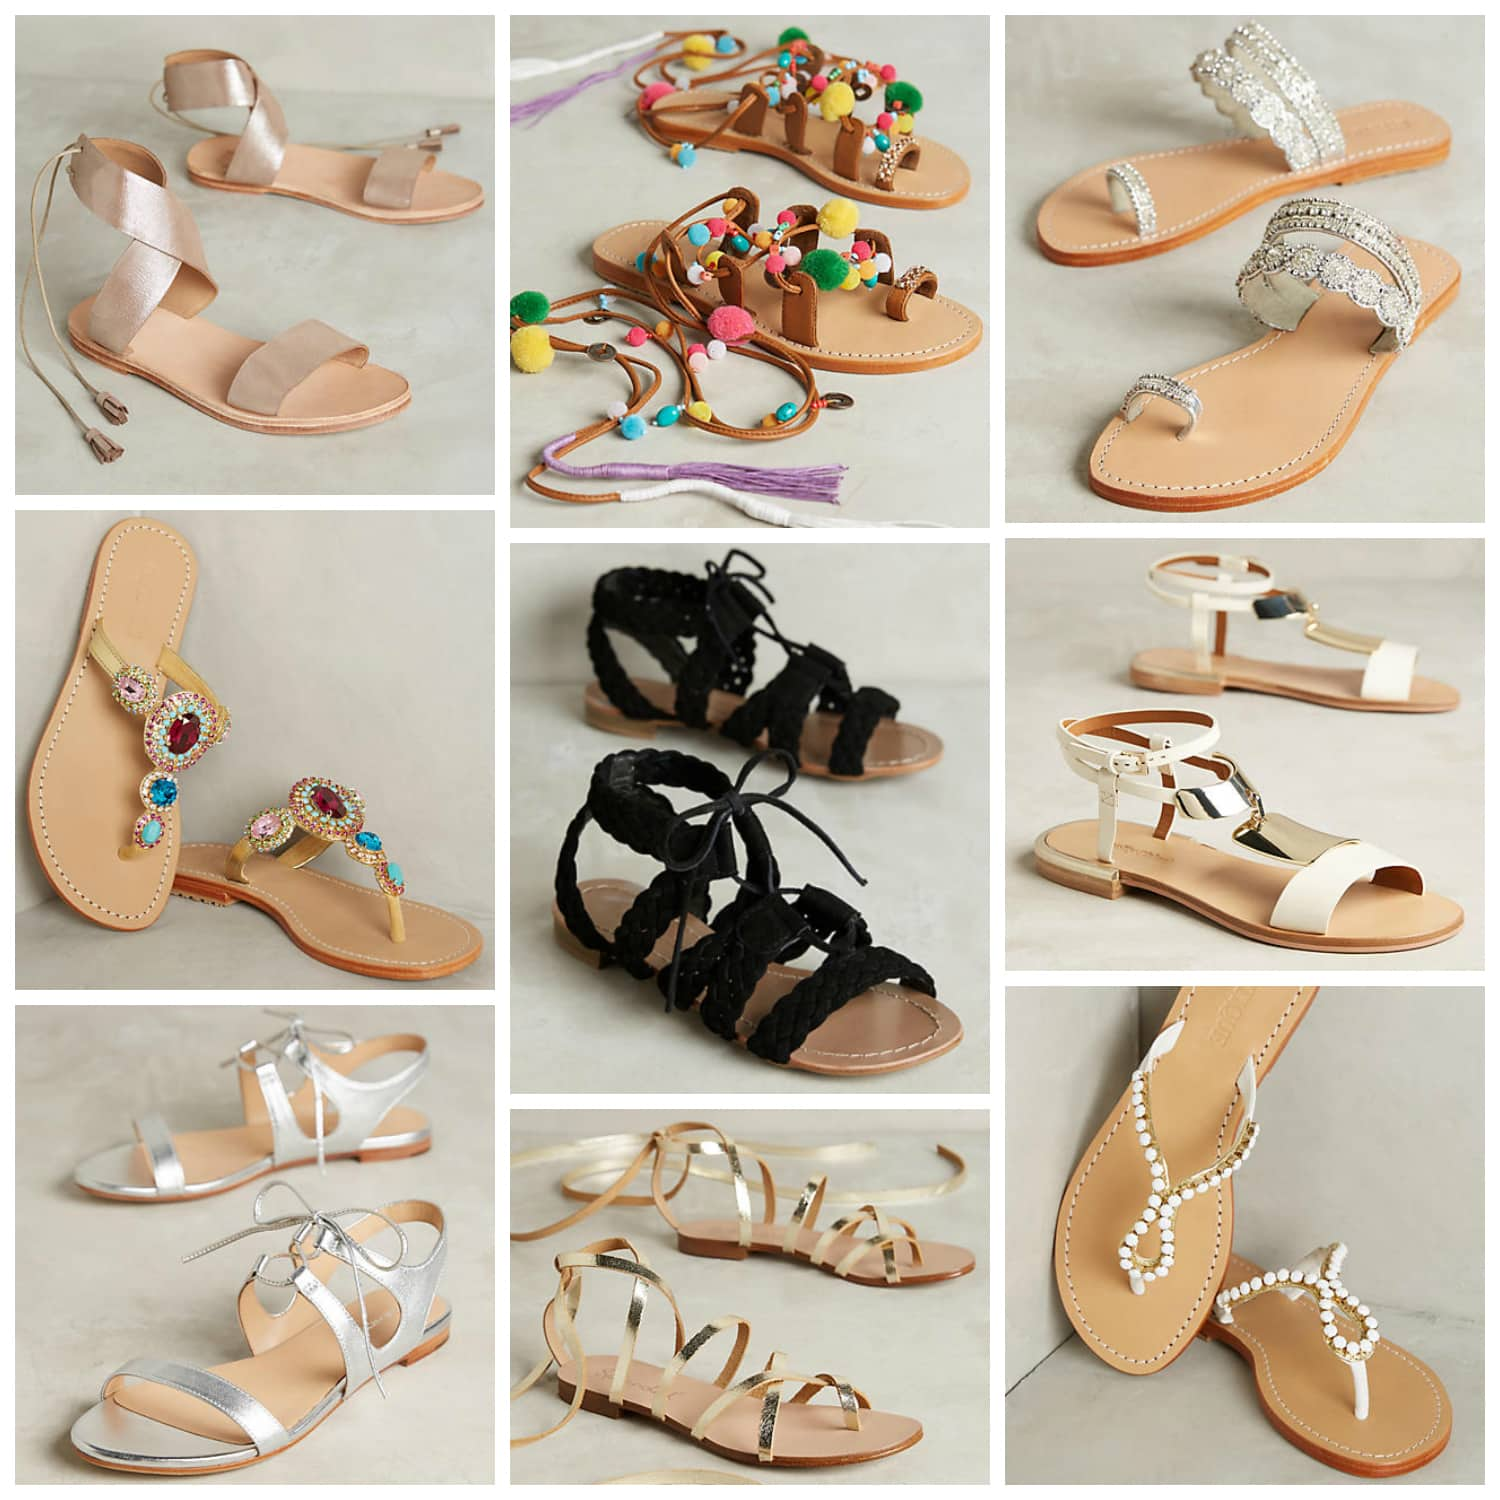 8f71677406a Where to Buy The Cutest Summer Sandals